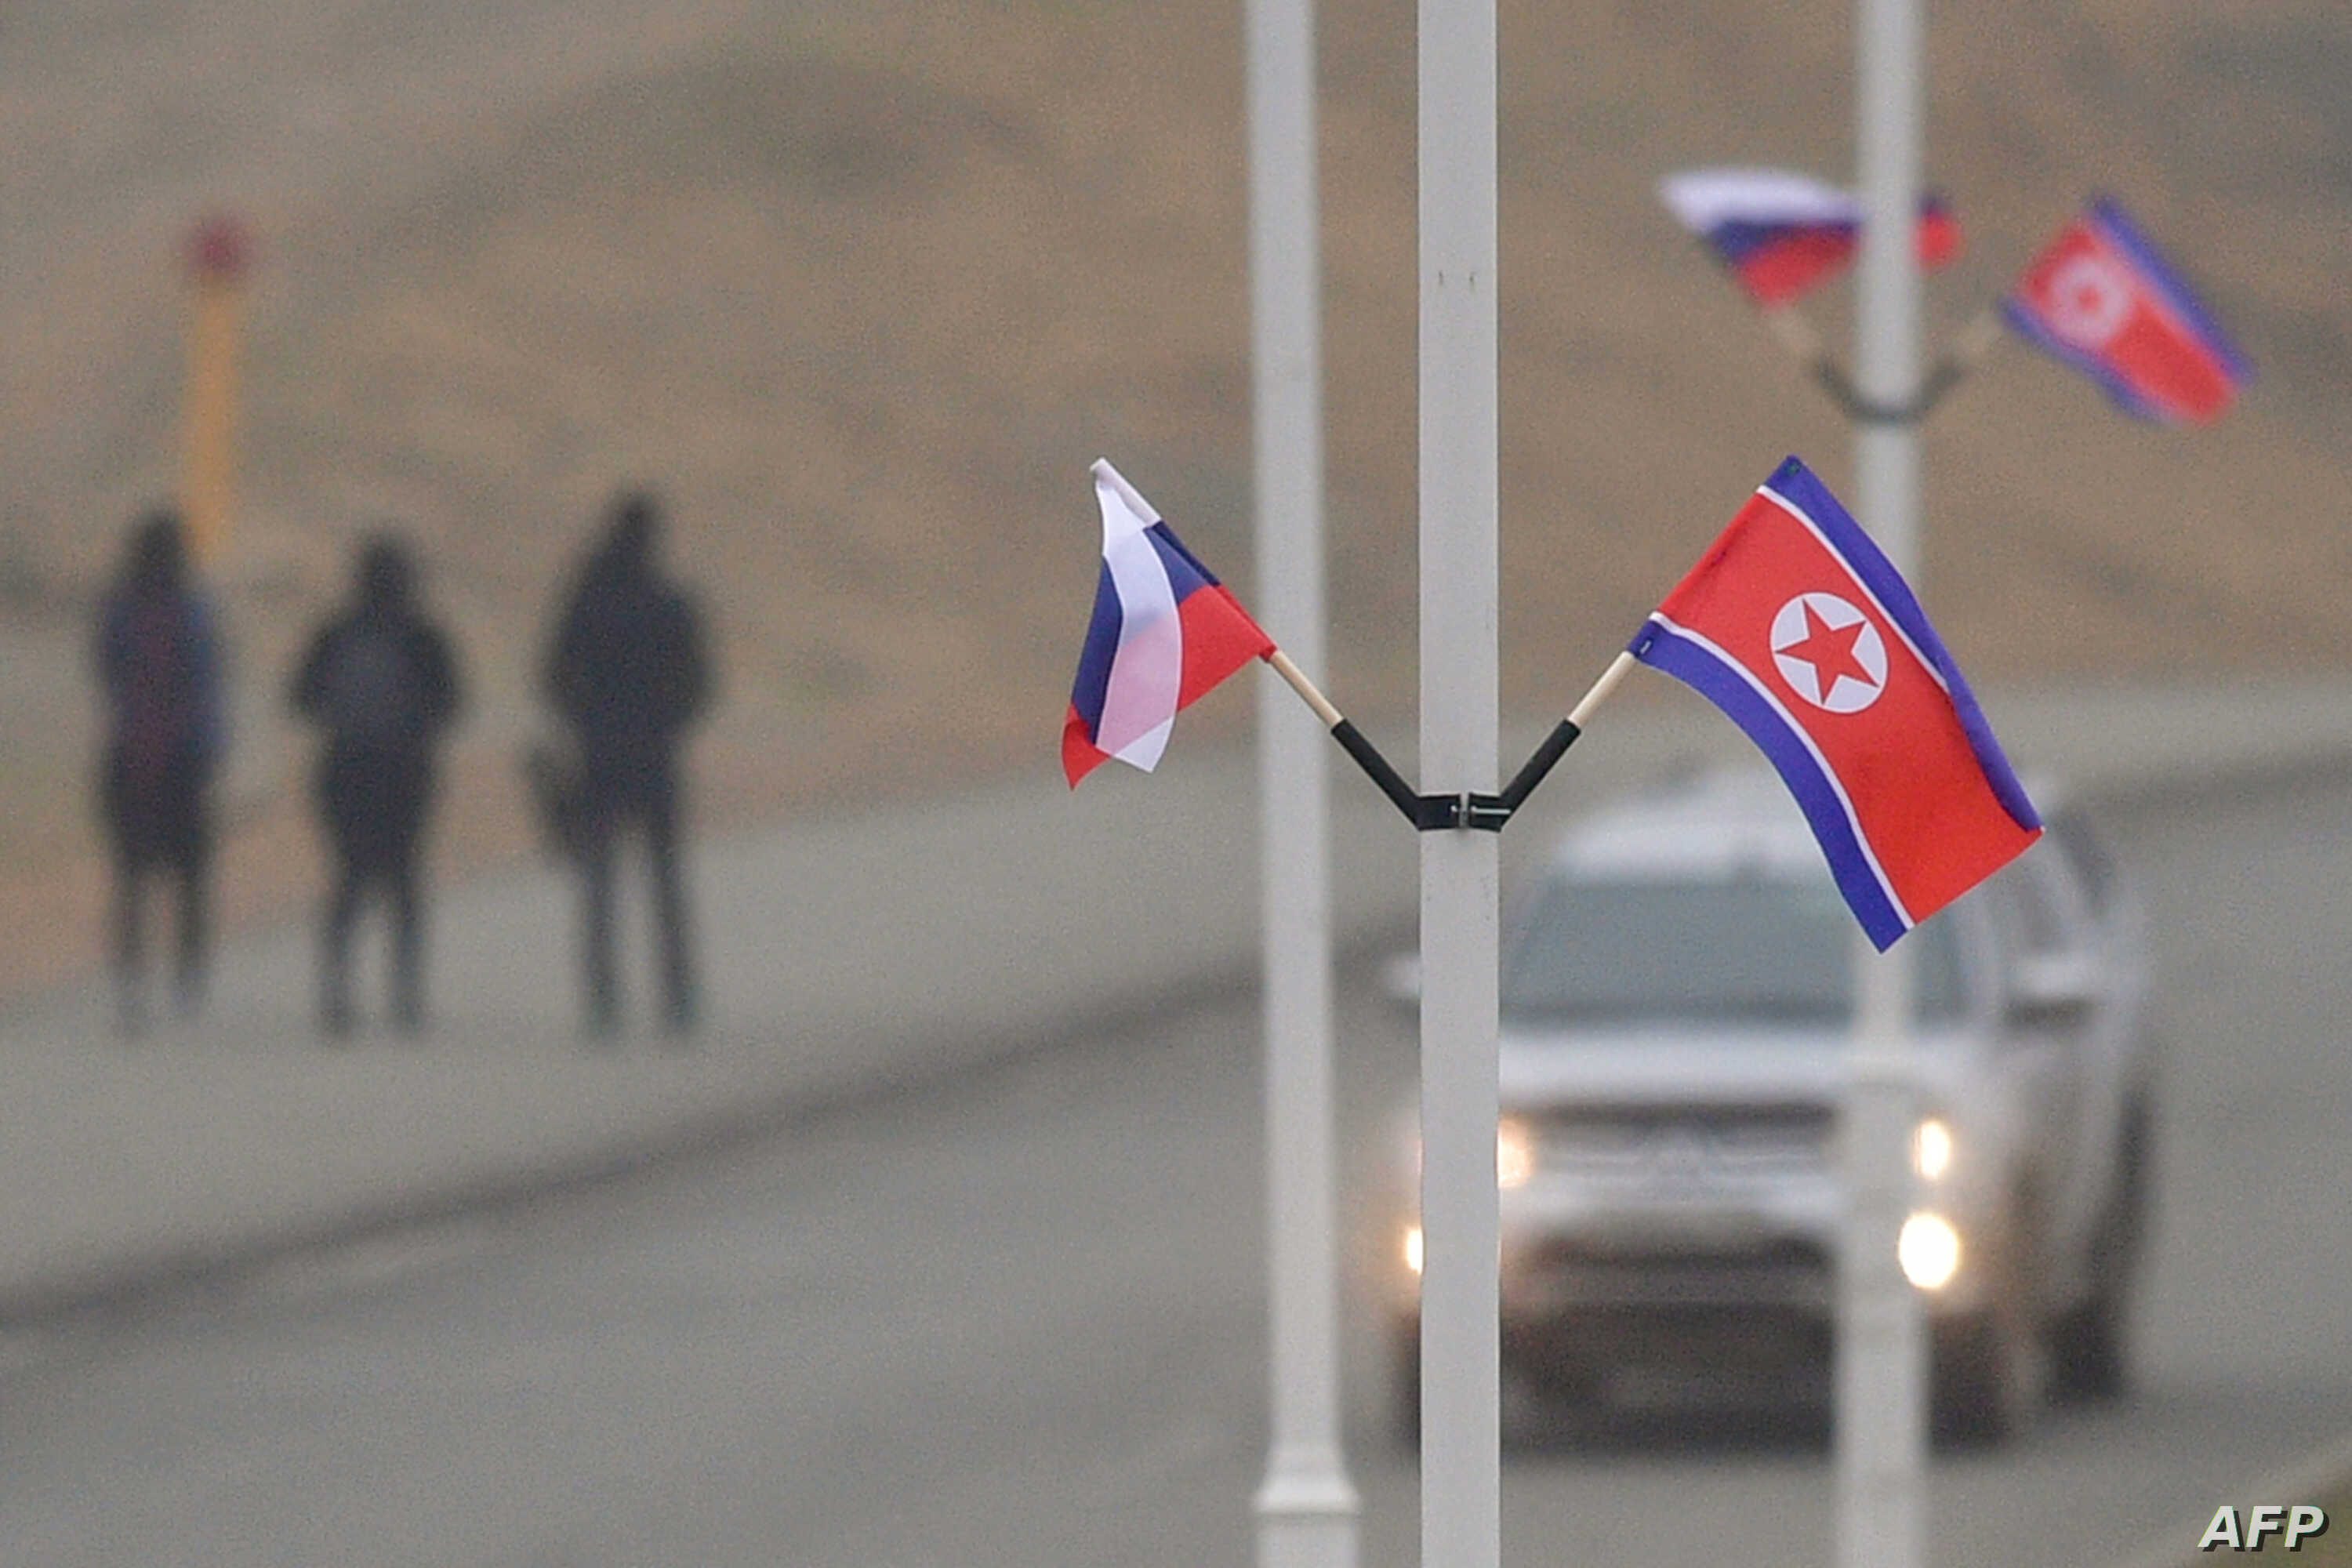 Flags of Russia and North Korea are seen fixed on lamp posts on Russky island in the far-eastern Russian port of Vladivostok on April 23, 2019.